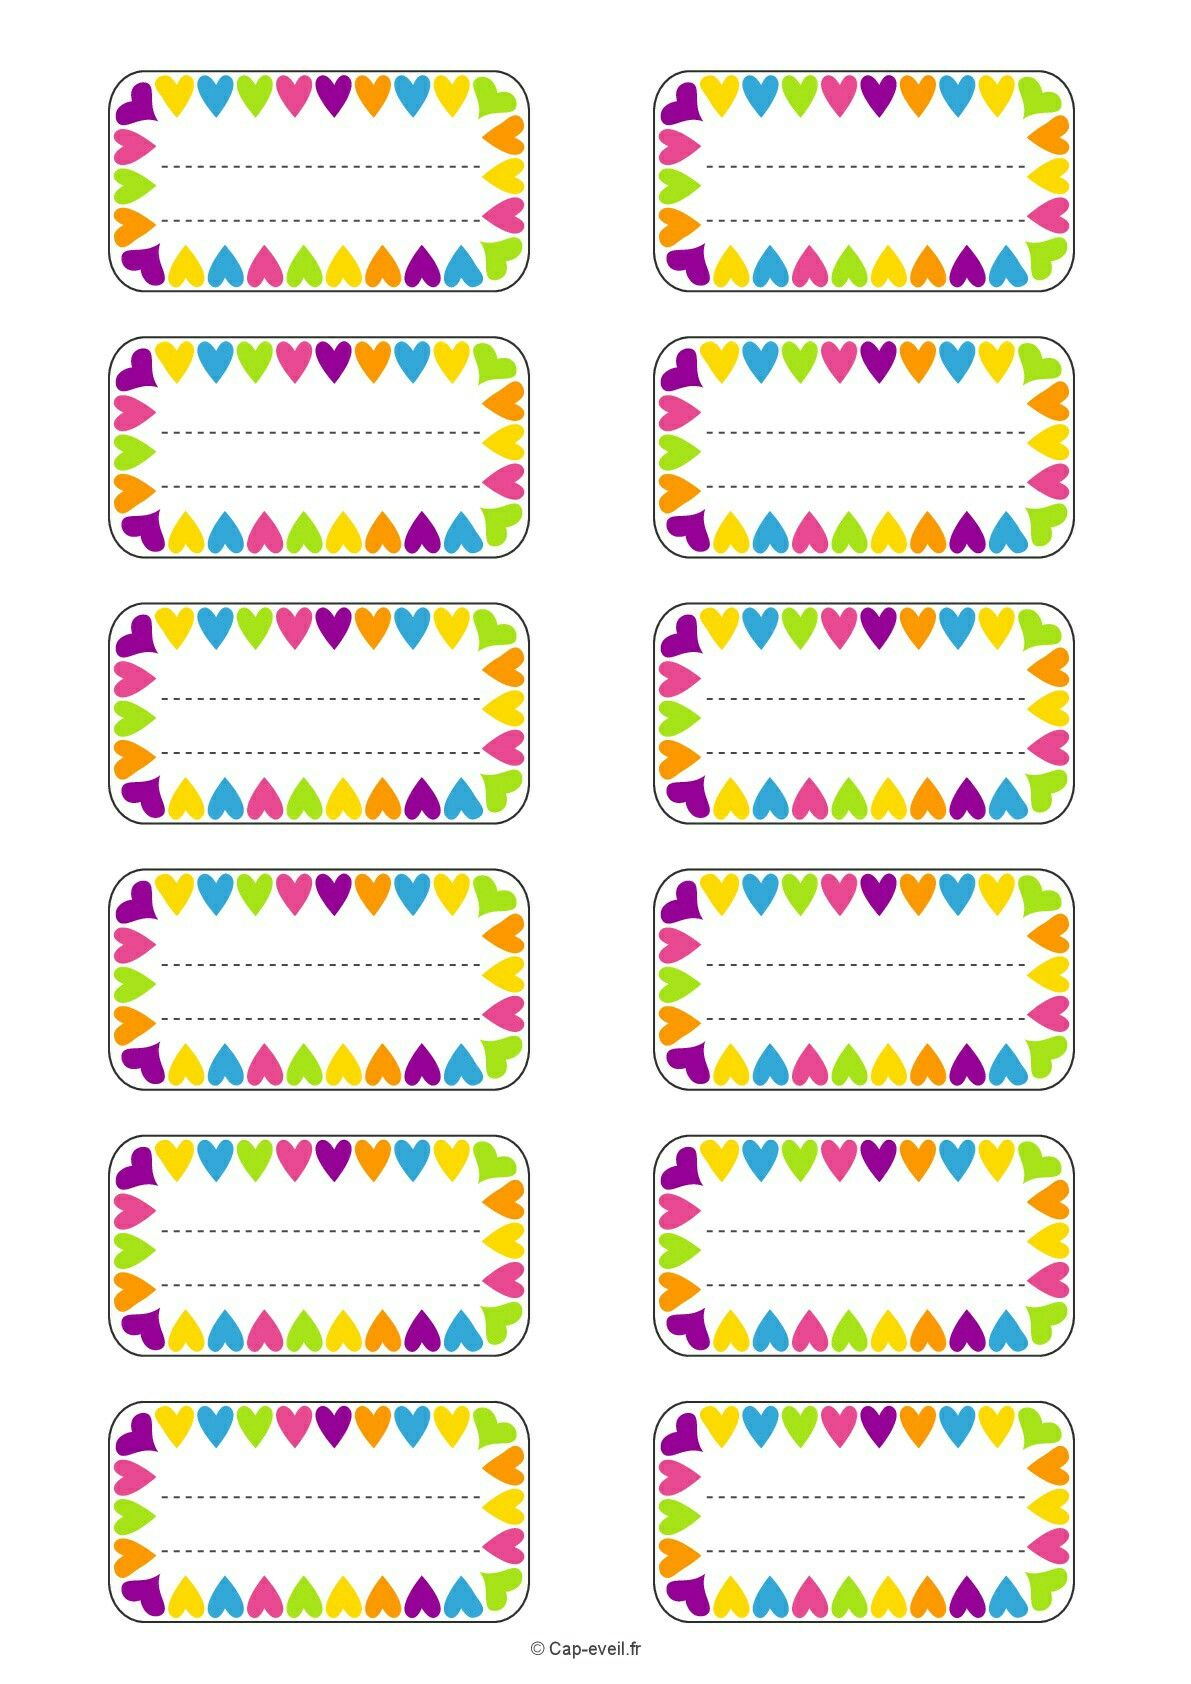 Etiquetas Escolares | Free Printable | Pinterest | School Labels - Free Printable Name Tags For Preschoolers